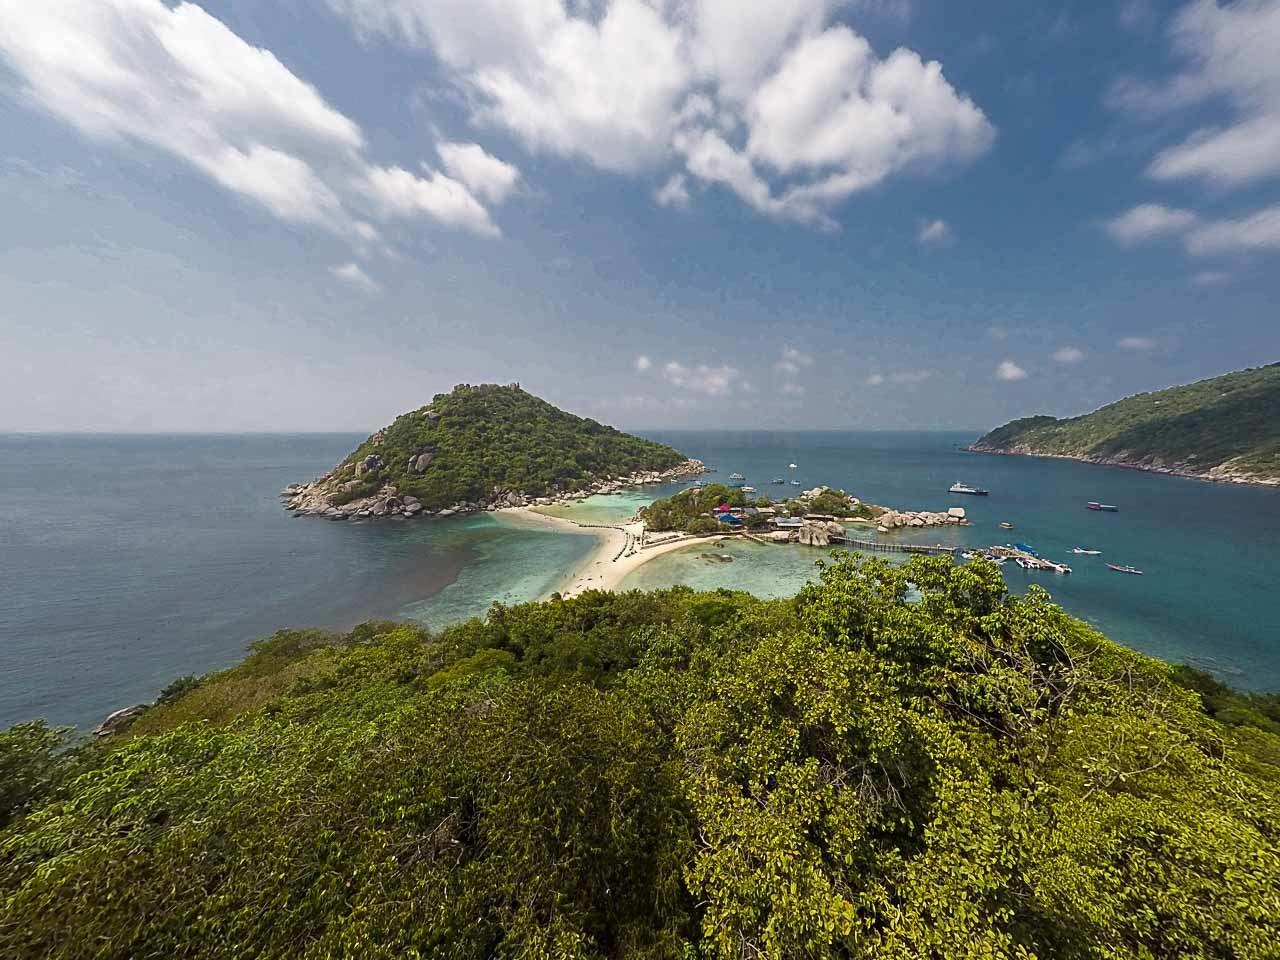 Koh Nang Yuan is a small island you can visit from Koh Tao.